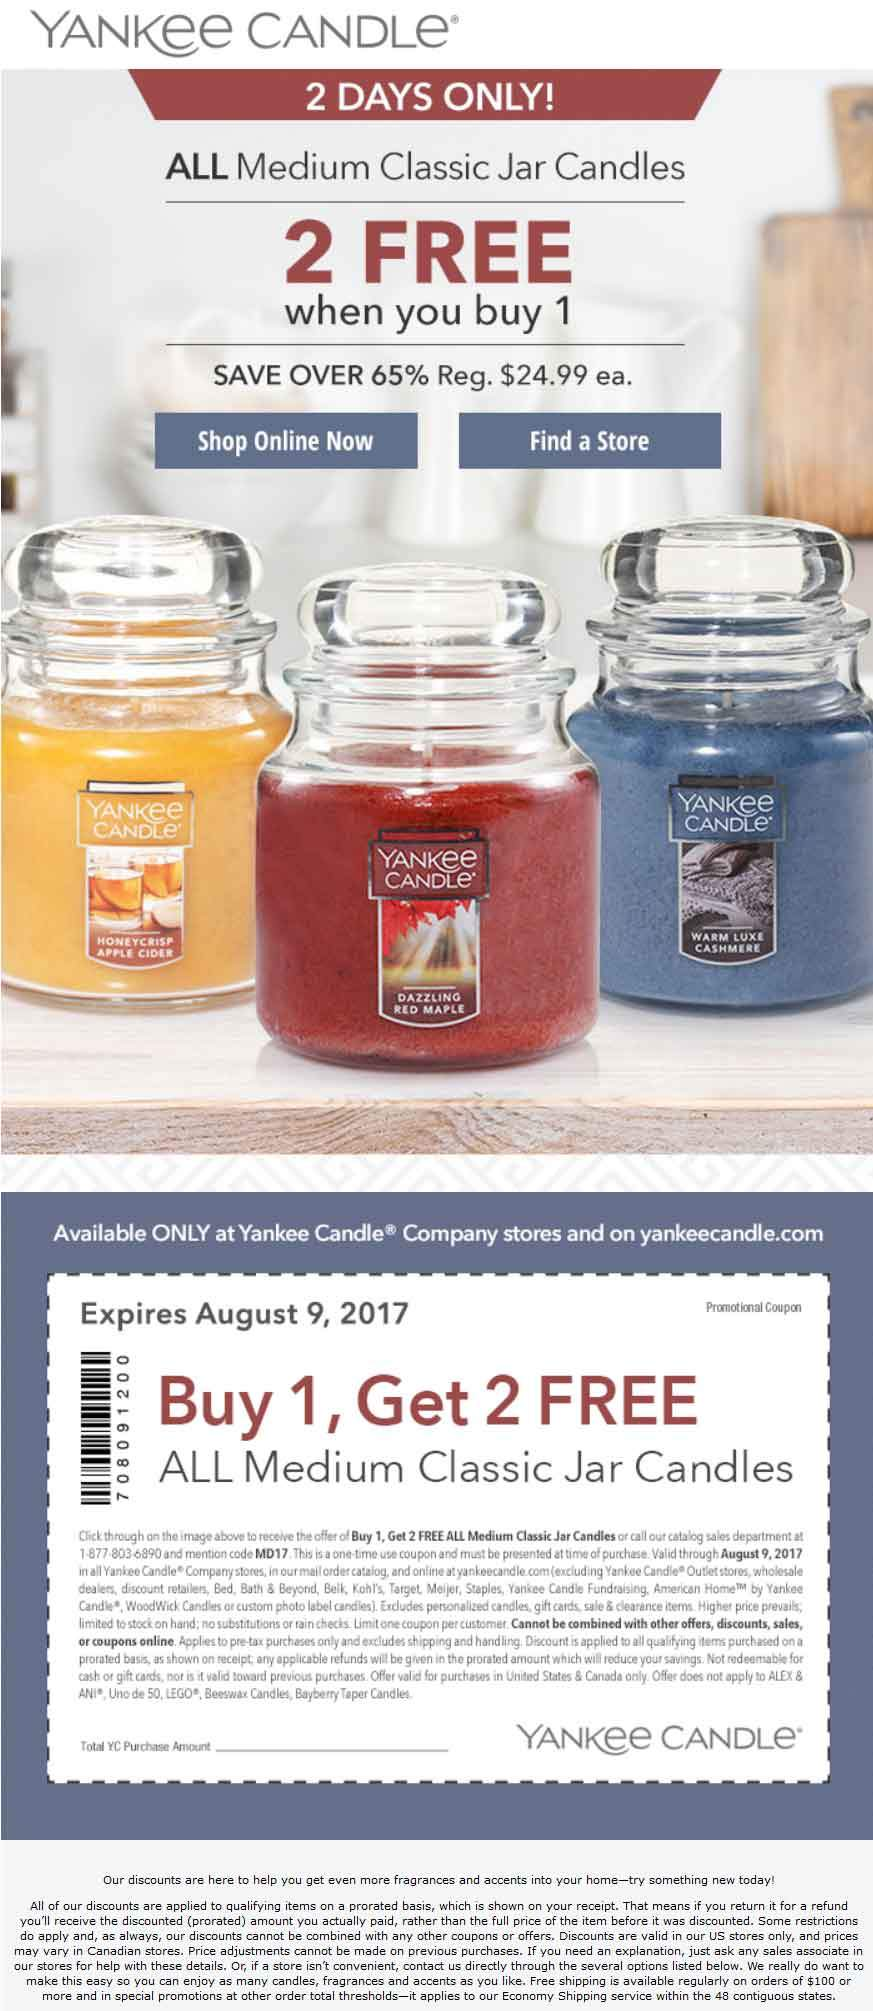 Yankee Candle Coupon October 2018 3-for-1 on medium candles today at Yankee Candle, or online via promo code MD17